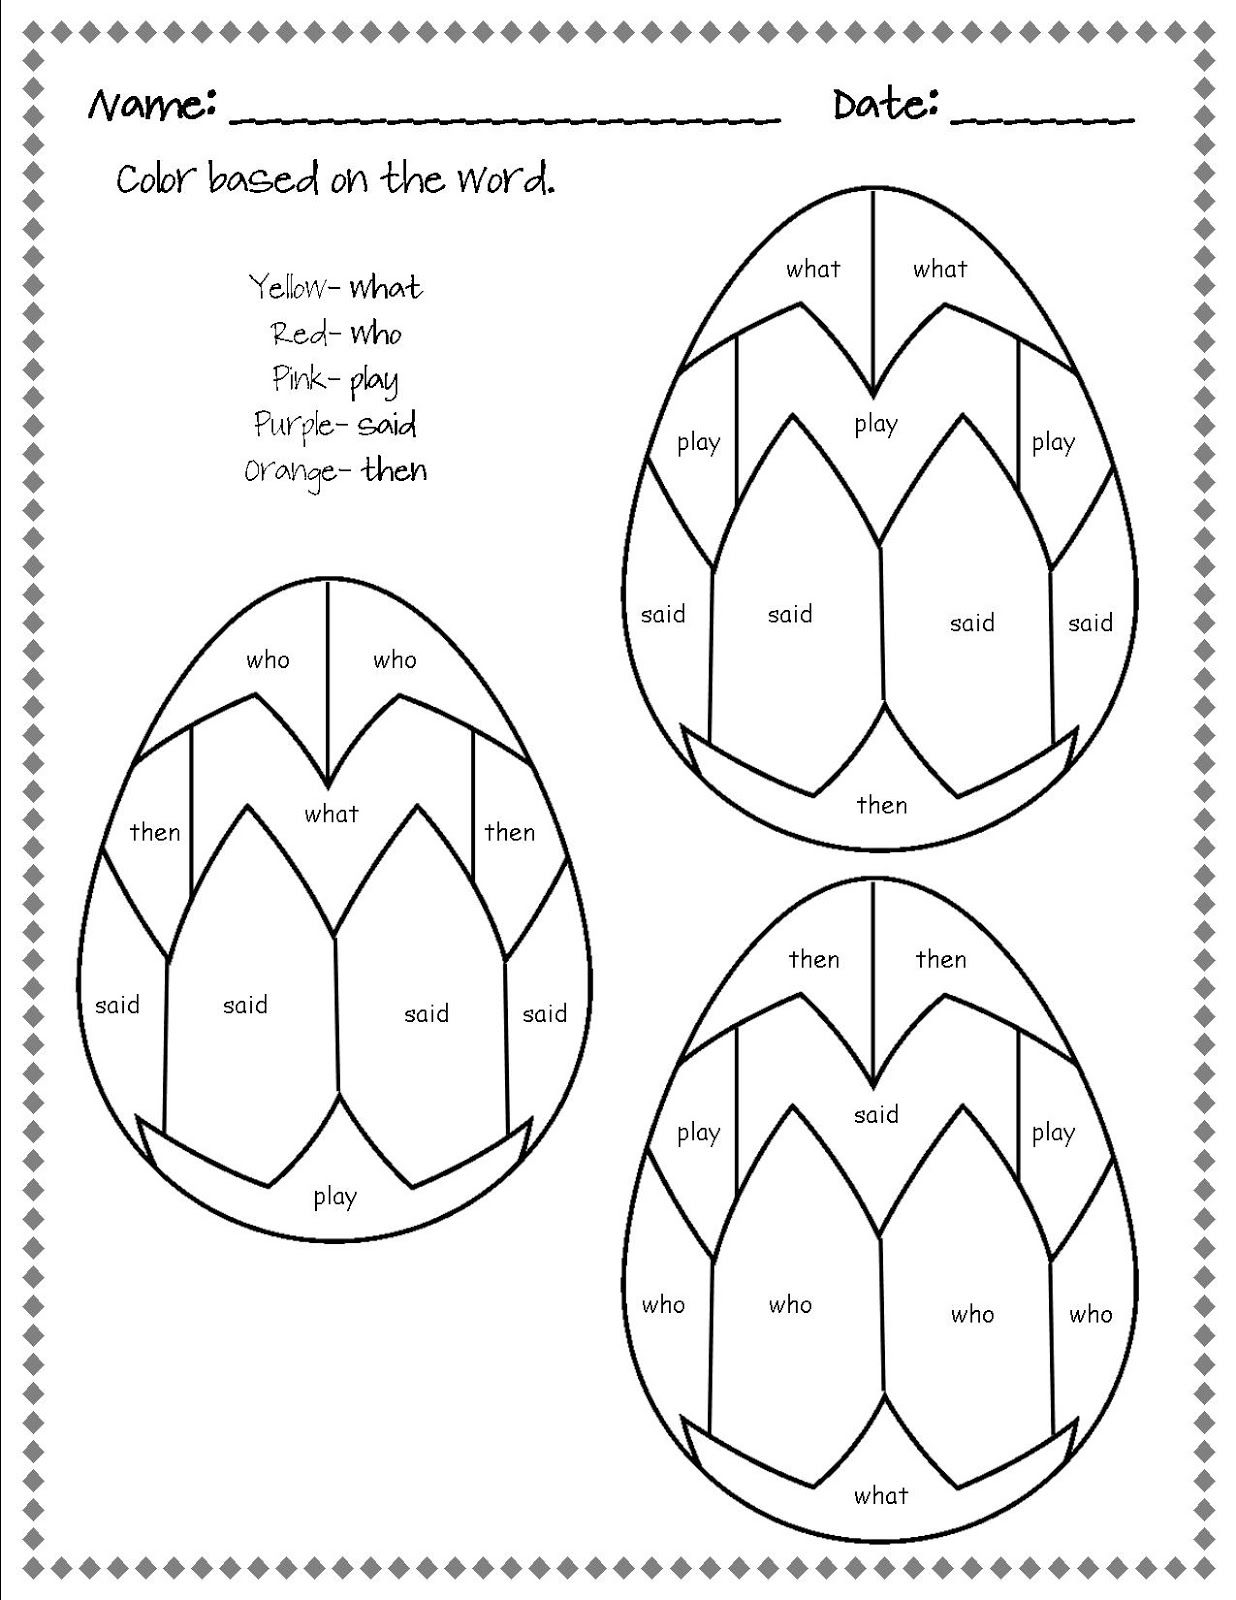 Coloring activities for 1st grade - Find This Pin And More On Teaching